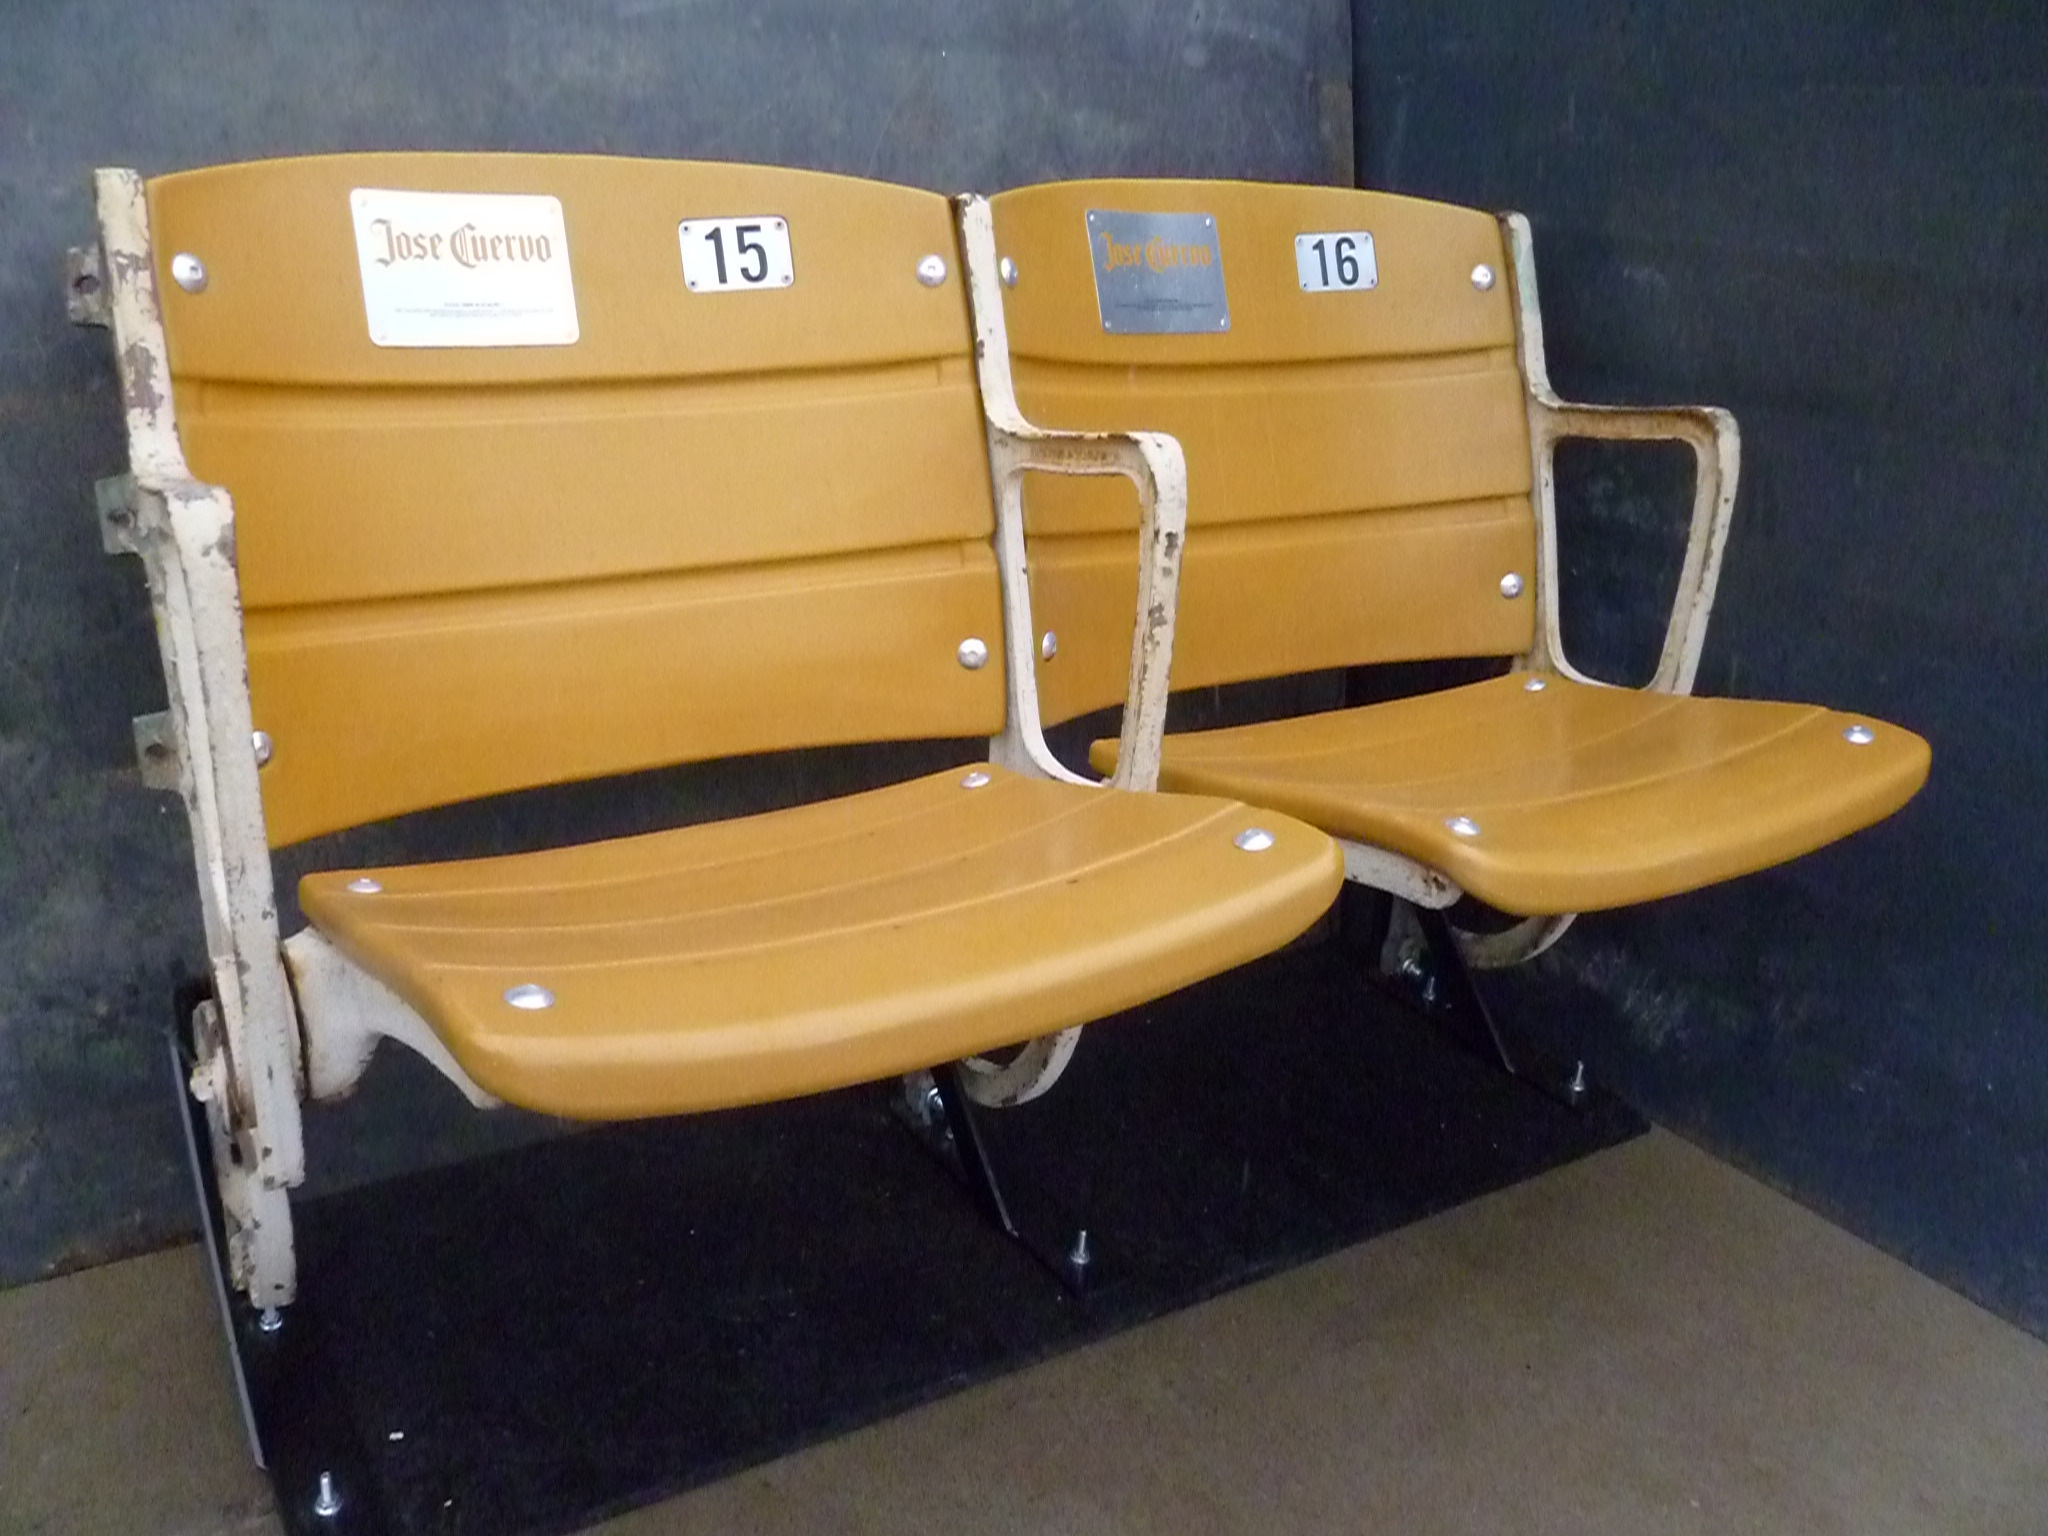 TV Garage Mahal On The DIY Network SS Seating Seats Featured April 17 2011 Episode Of